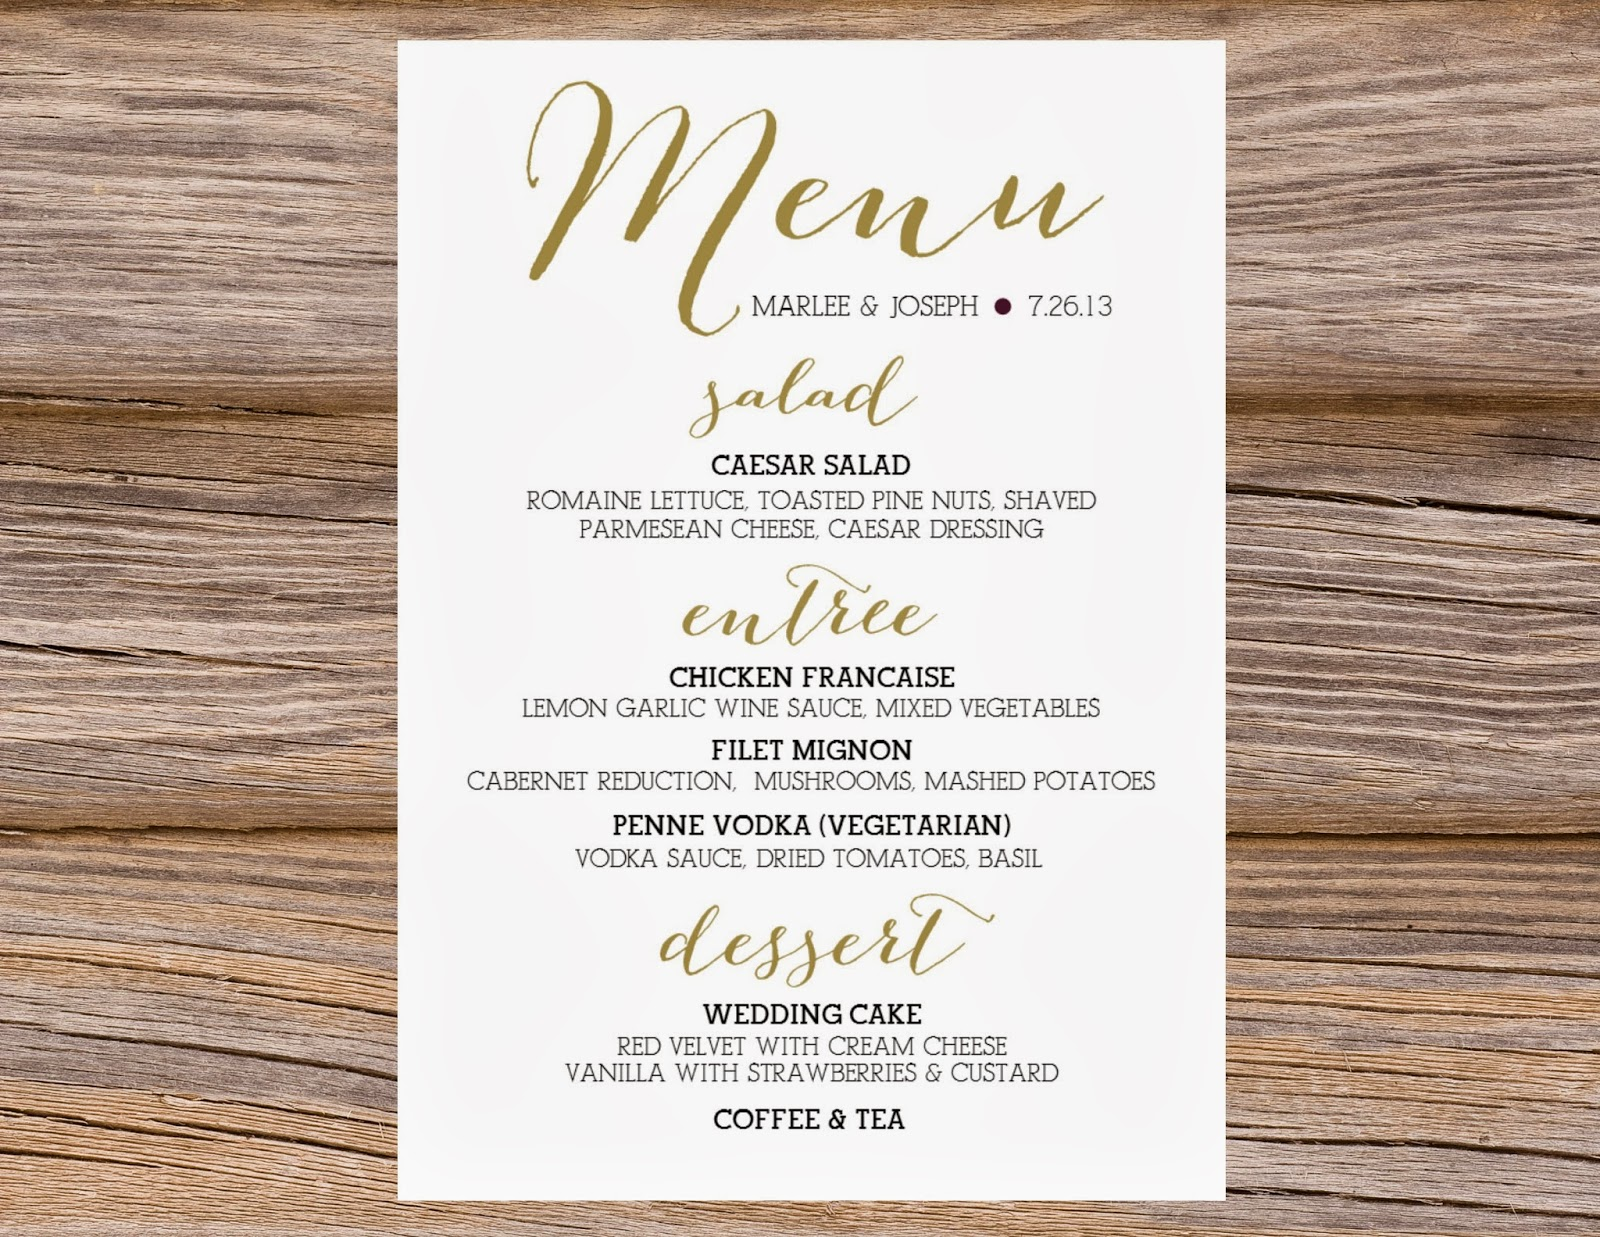 calligraphy menus wedding menus As usual we can customize the colors etc We can even pull the exact color from an invitation or dress photo if provided for an exact match